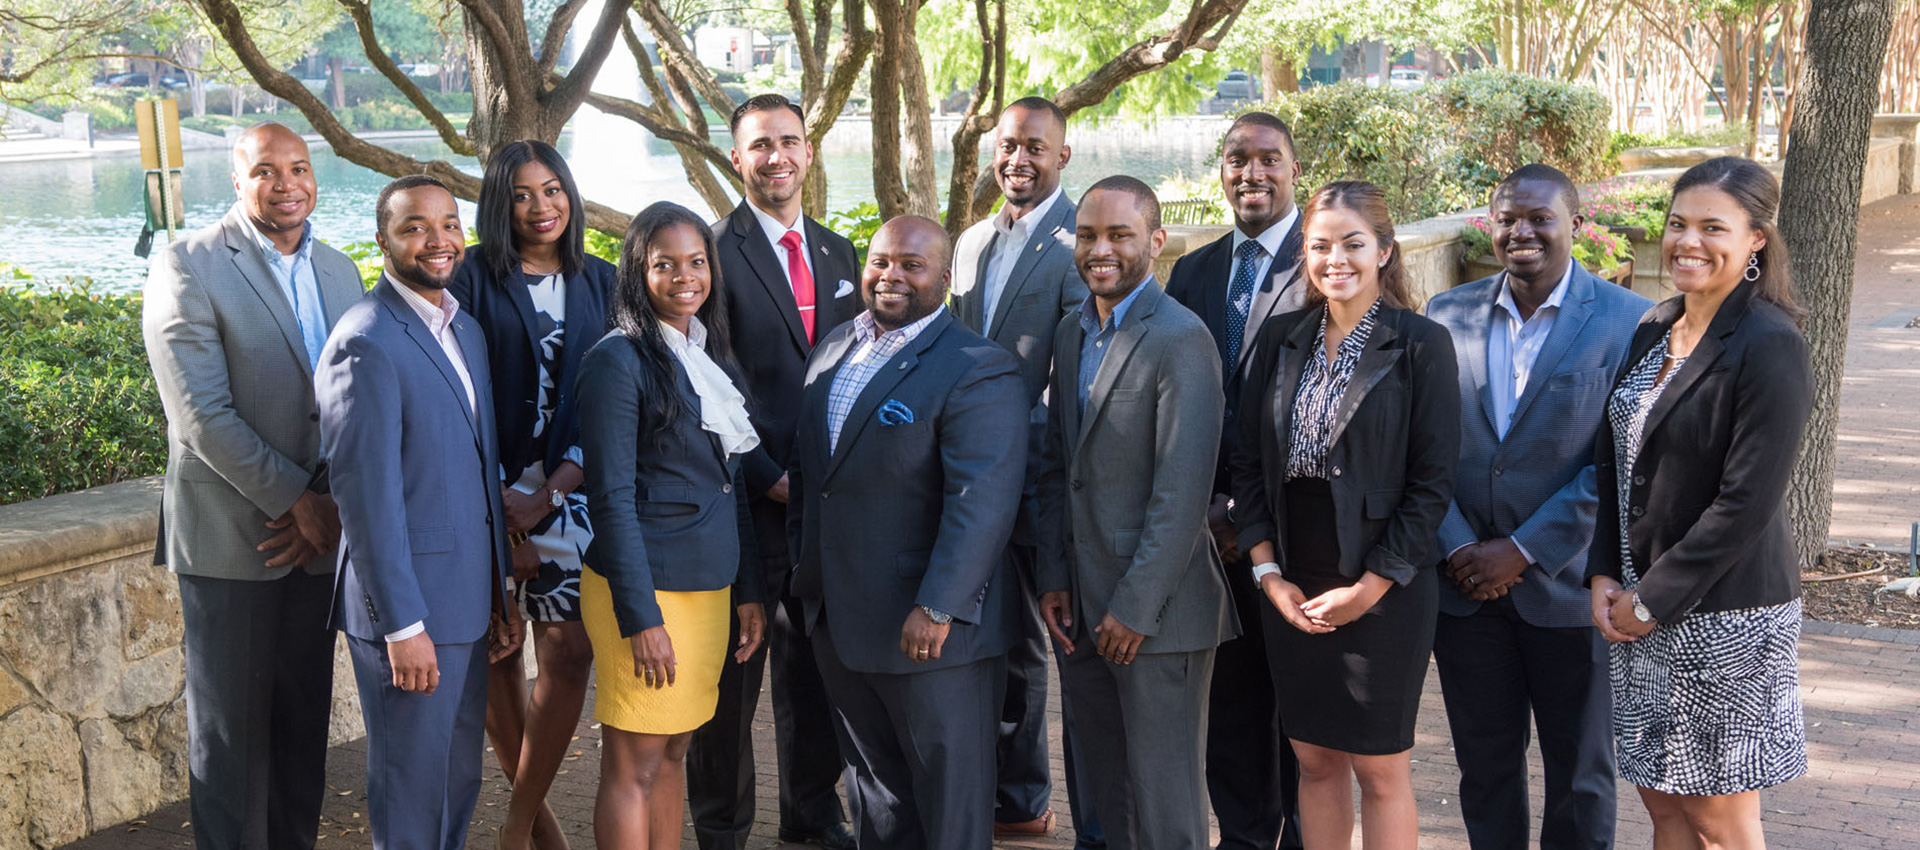 Minority Academy attendees 2017